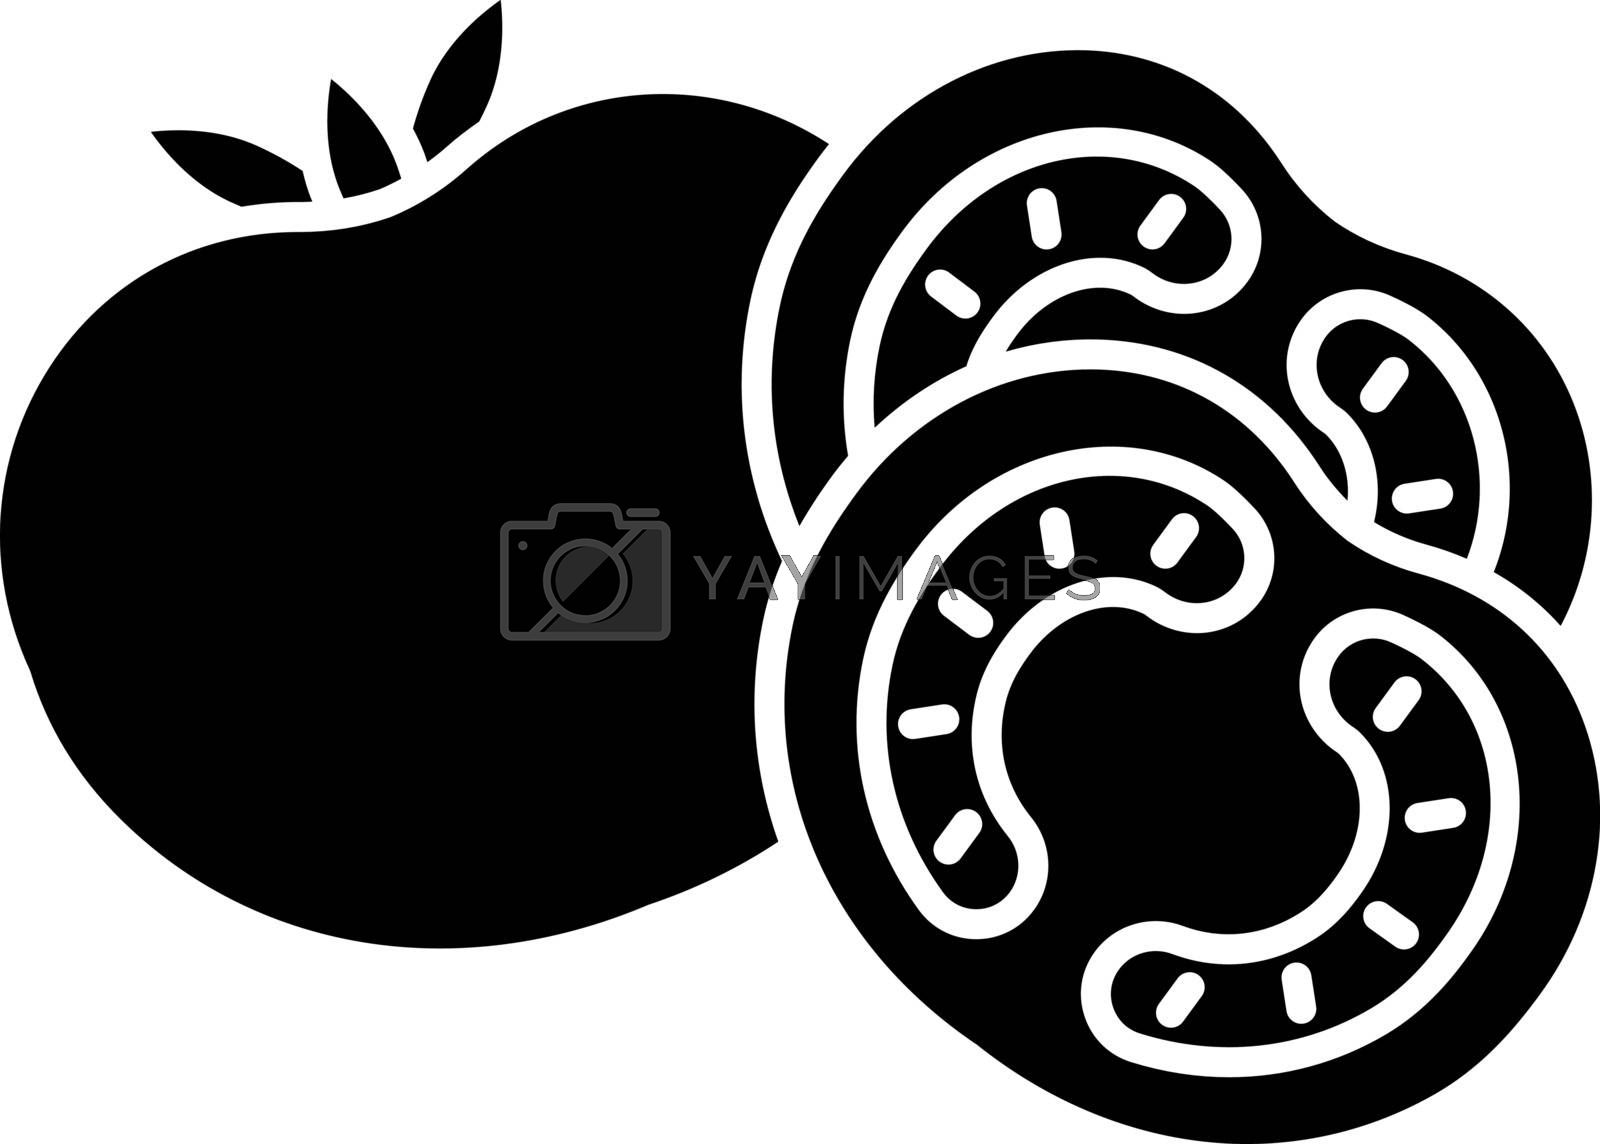 Tomato black glyph icon. Ketchup sauce recipe. Fresh vegetable and nourishment. Nutrient food with vitamin. Vegan salad ingredient. Silhouette symbol on white space. Vector isolated illustration